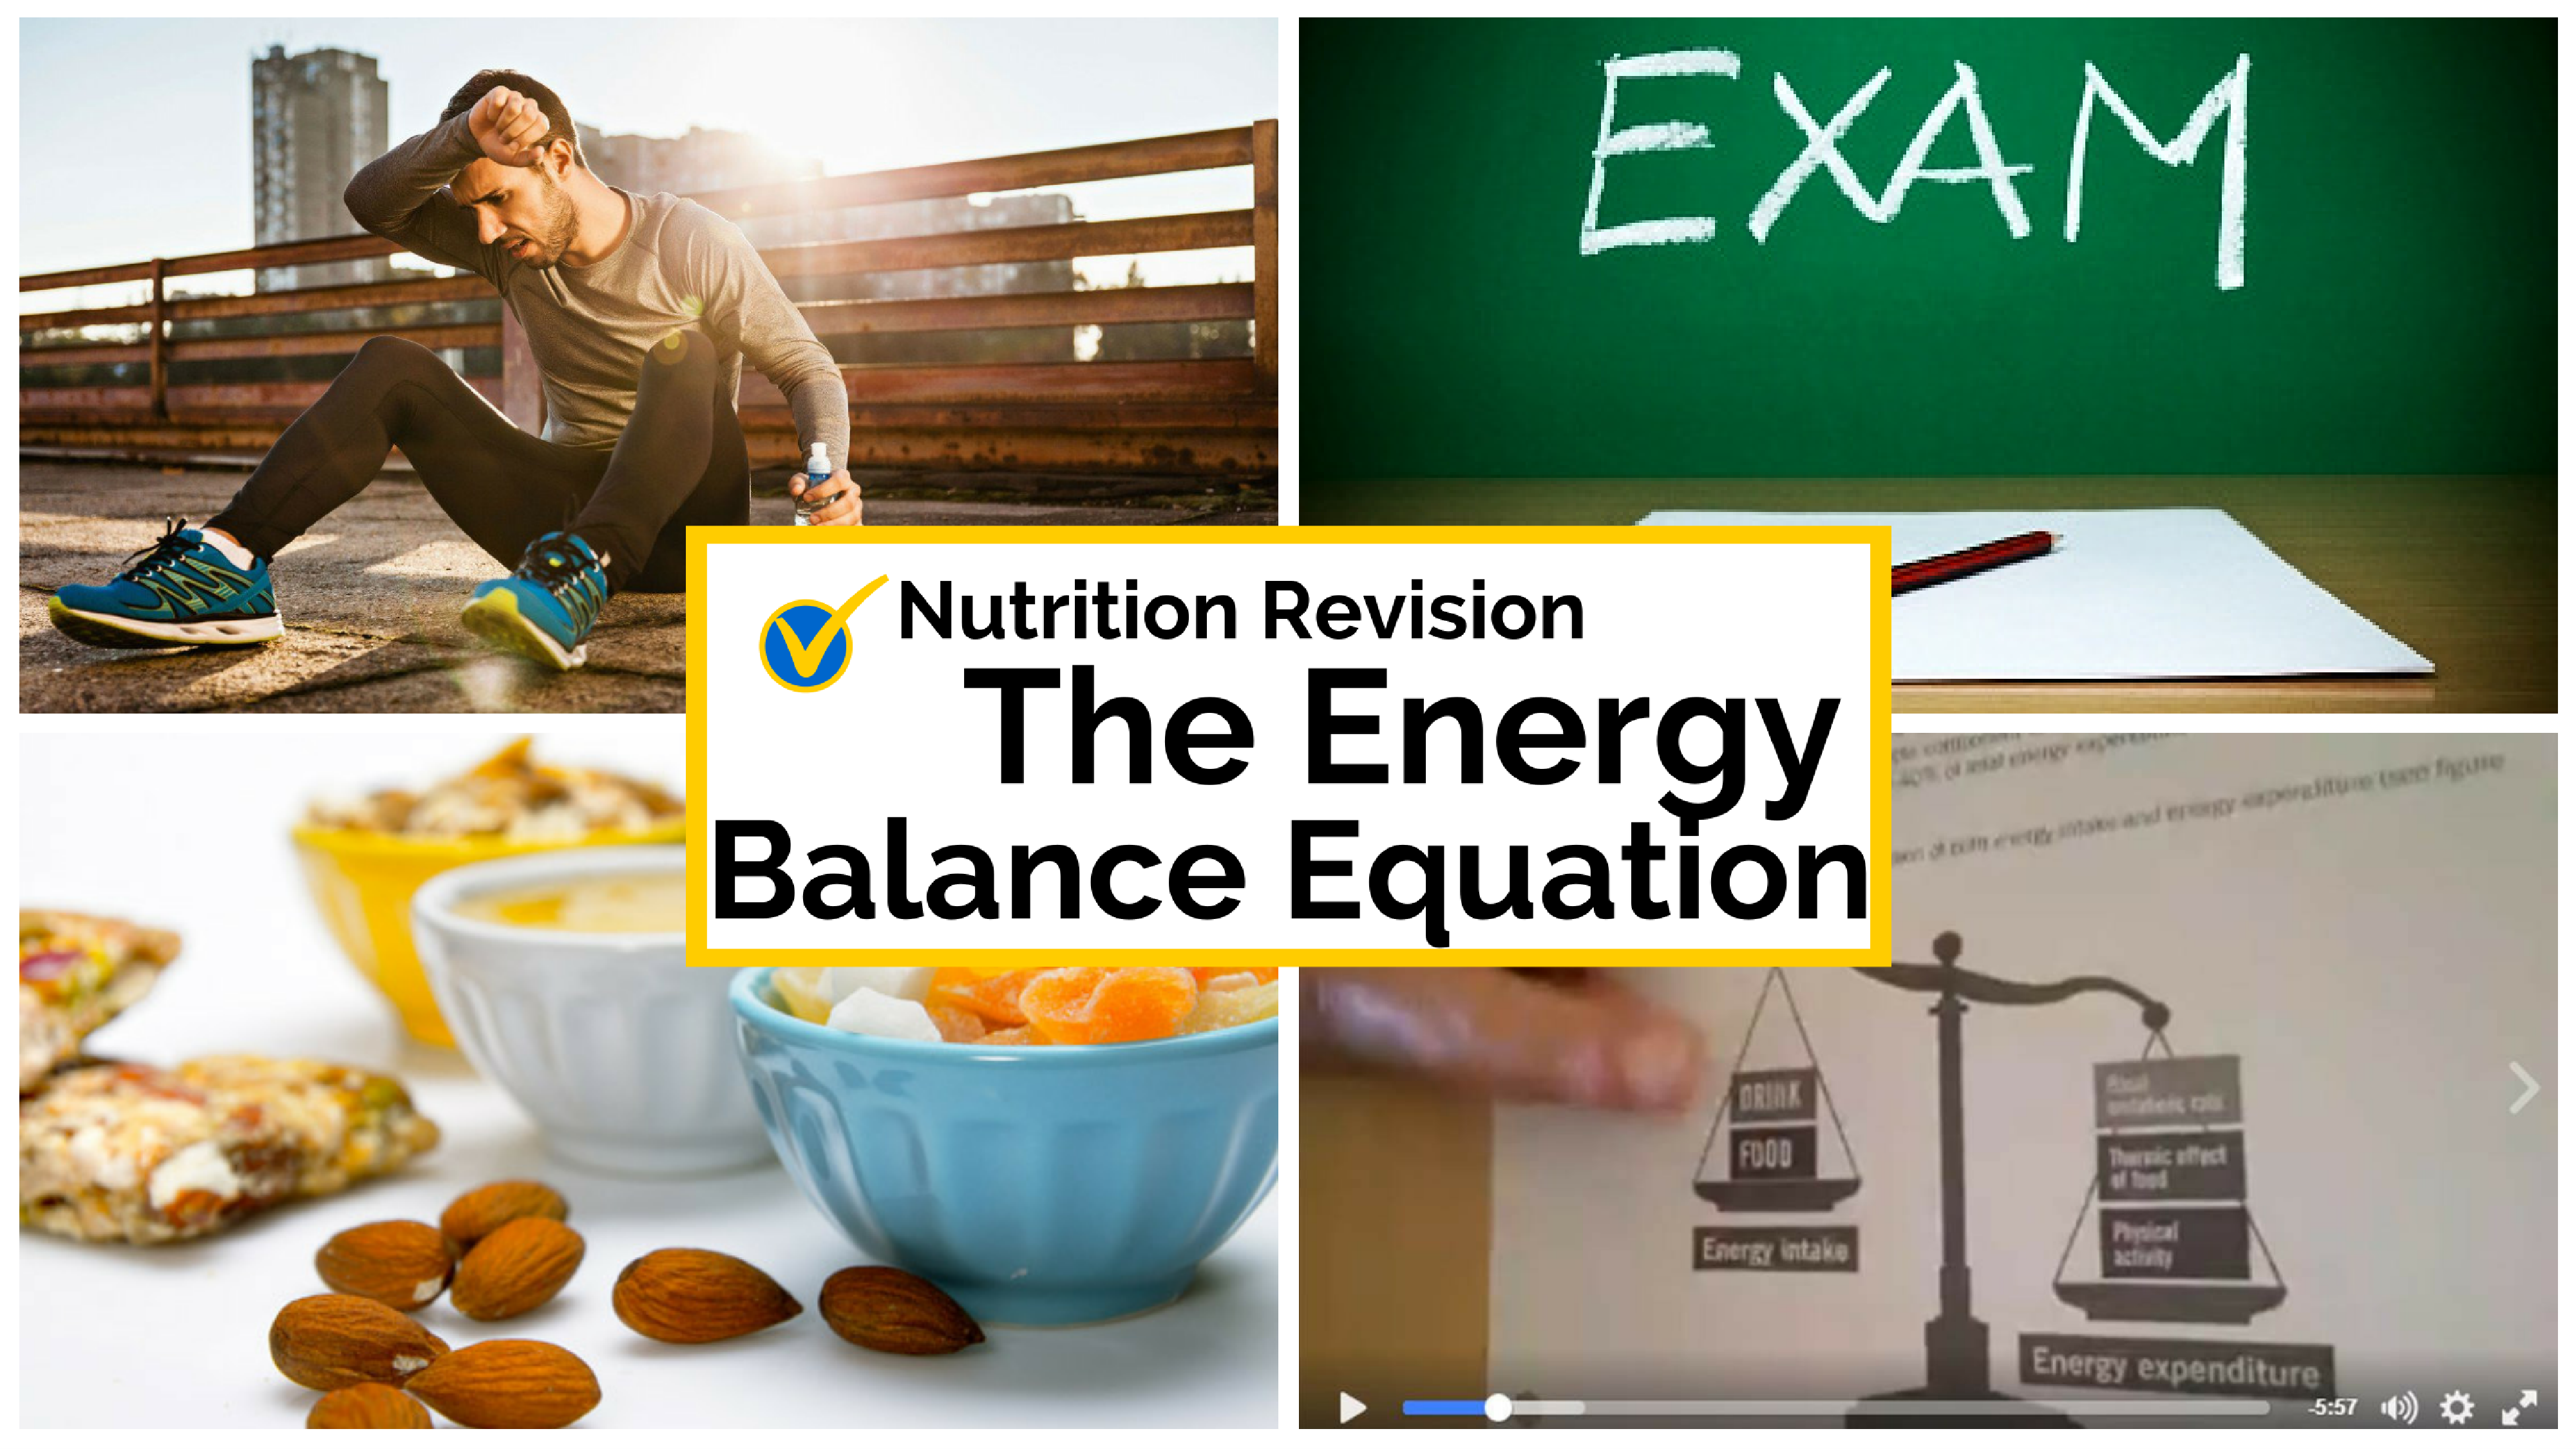 The Energy Balance Equation